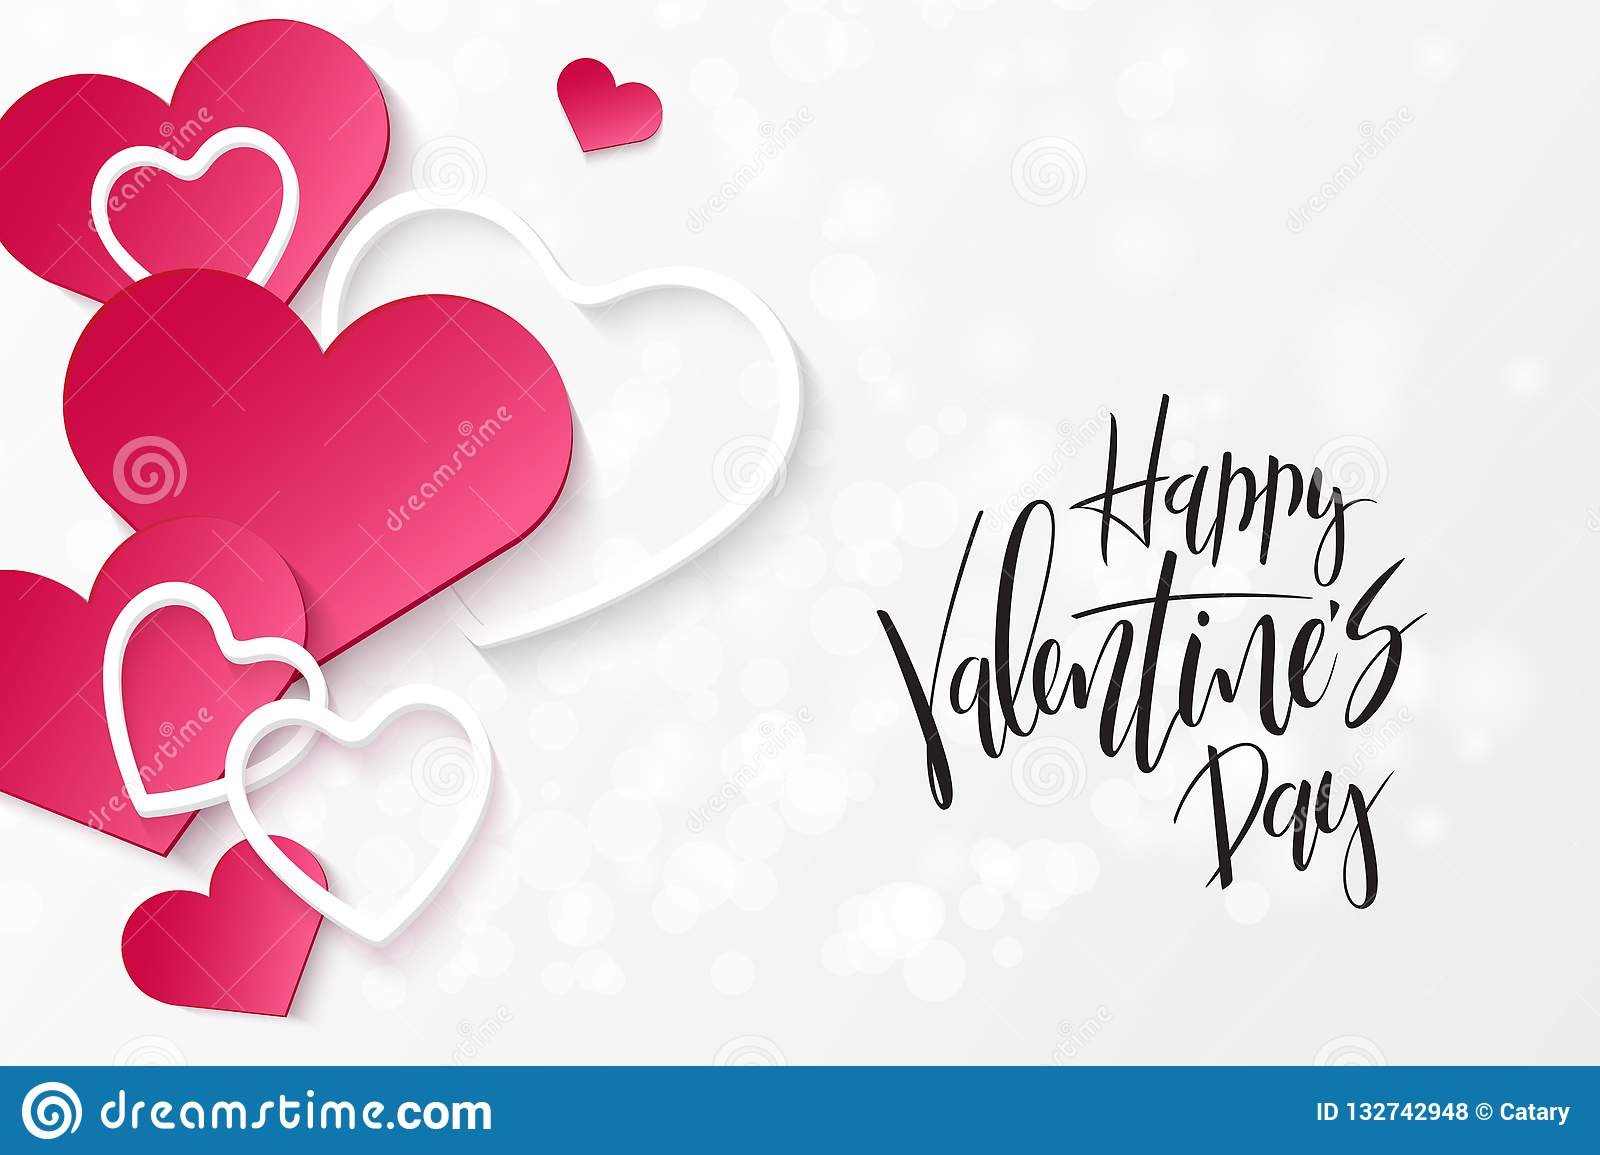 Vector Illustration Of Valentine S Day Greetings Card Template With